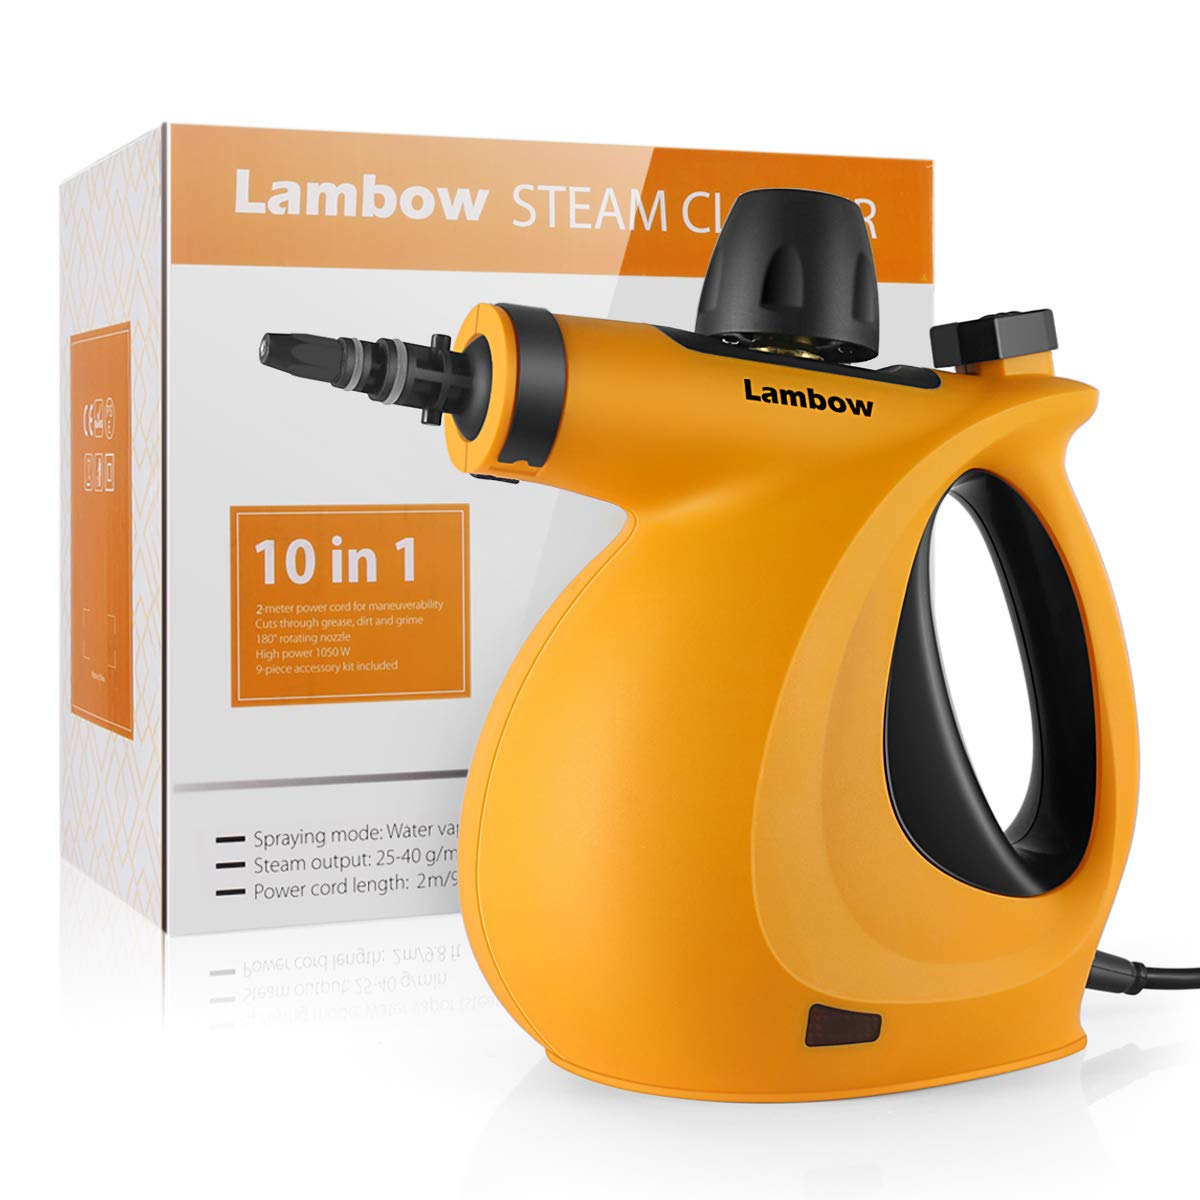 Lambow Handheld Pressurized Cleaner 9-Piece Accessory Set Purpose Multi-Surface All Natural, Chemical-Free Steam Cleaning Home, Auto, Patio (Orange) by Pop V